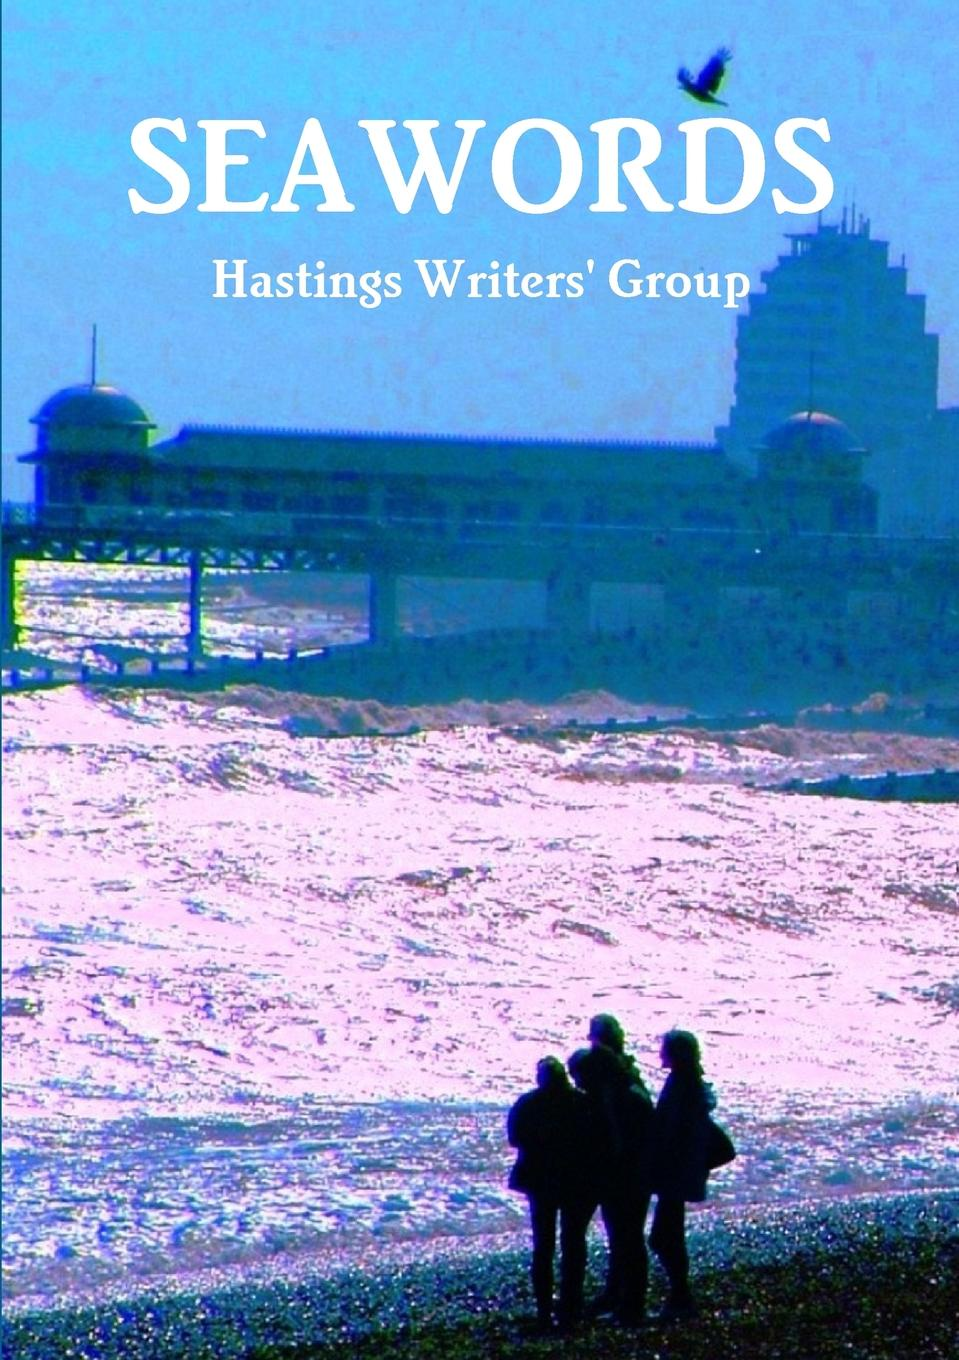 Hastings Writers' Group Seawords